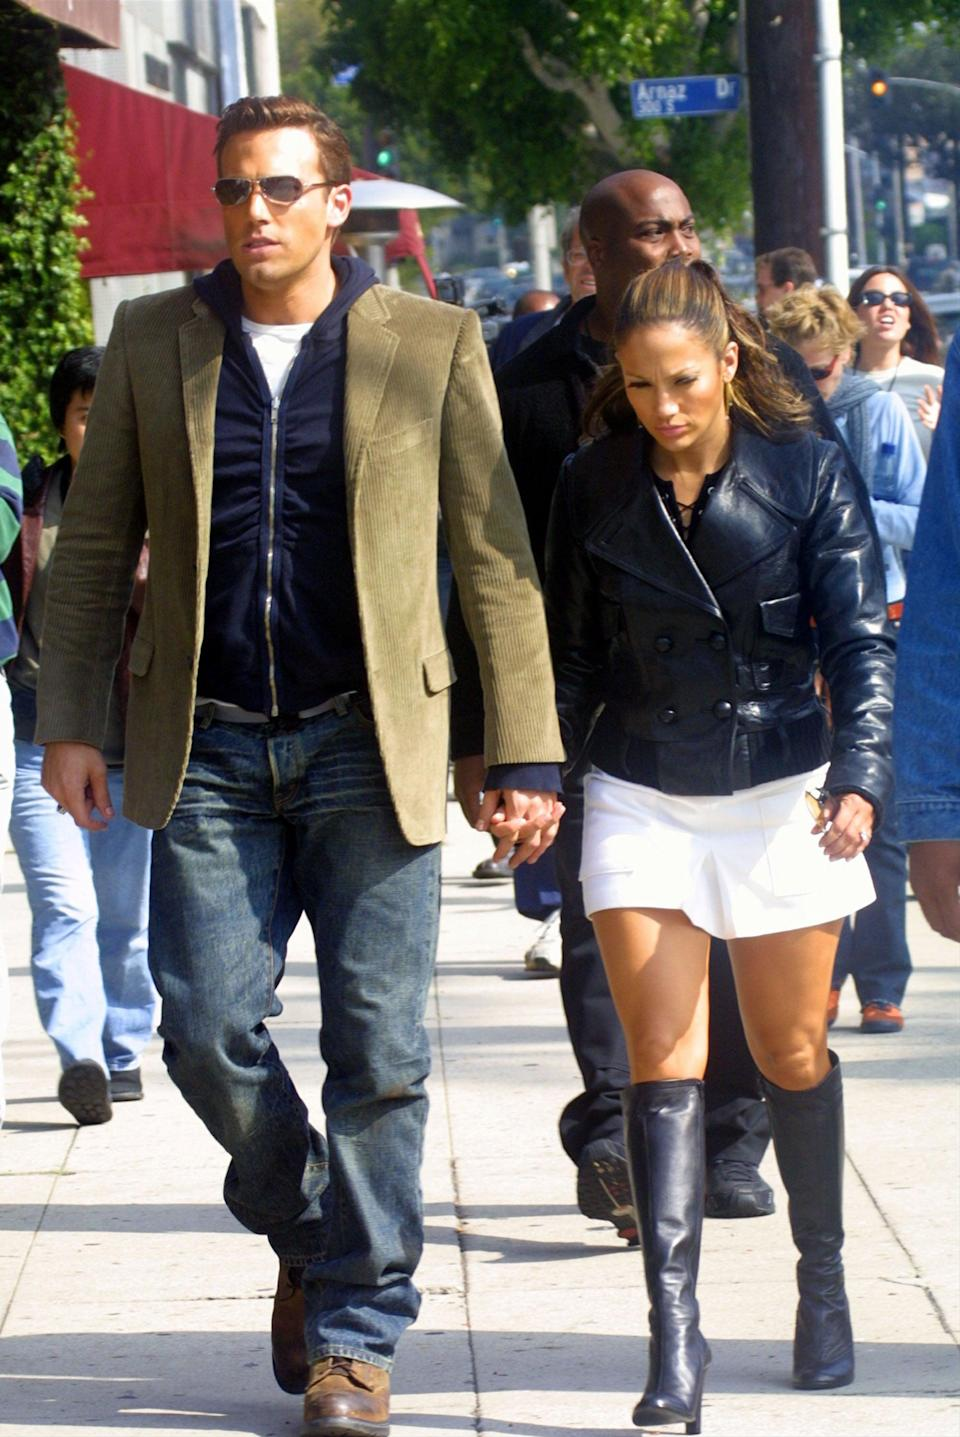 <p>The zip-up hoodie under the blazer is classic early 2000s, as are J.Lo's knee-high boots and mini combo on a walk in LA in October 2002.</p>